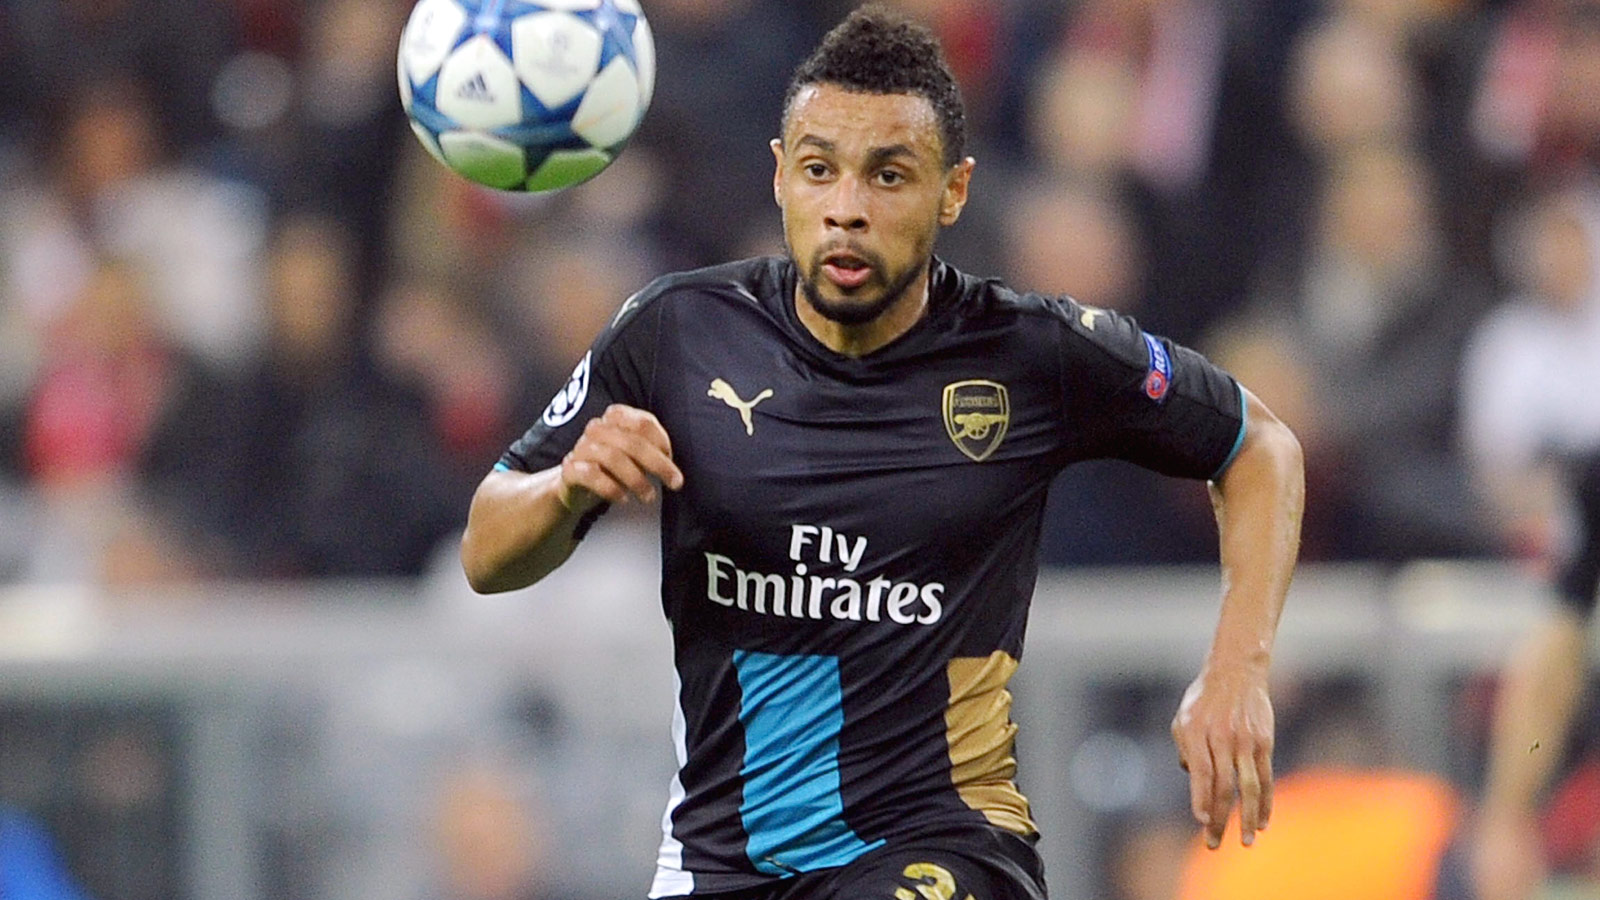 Arsenal's center back situation is so bad that Francis Coquelin is playing defense